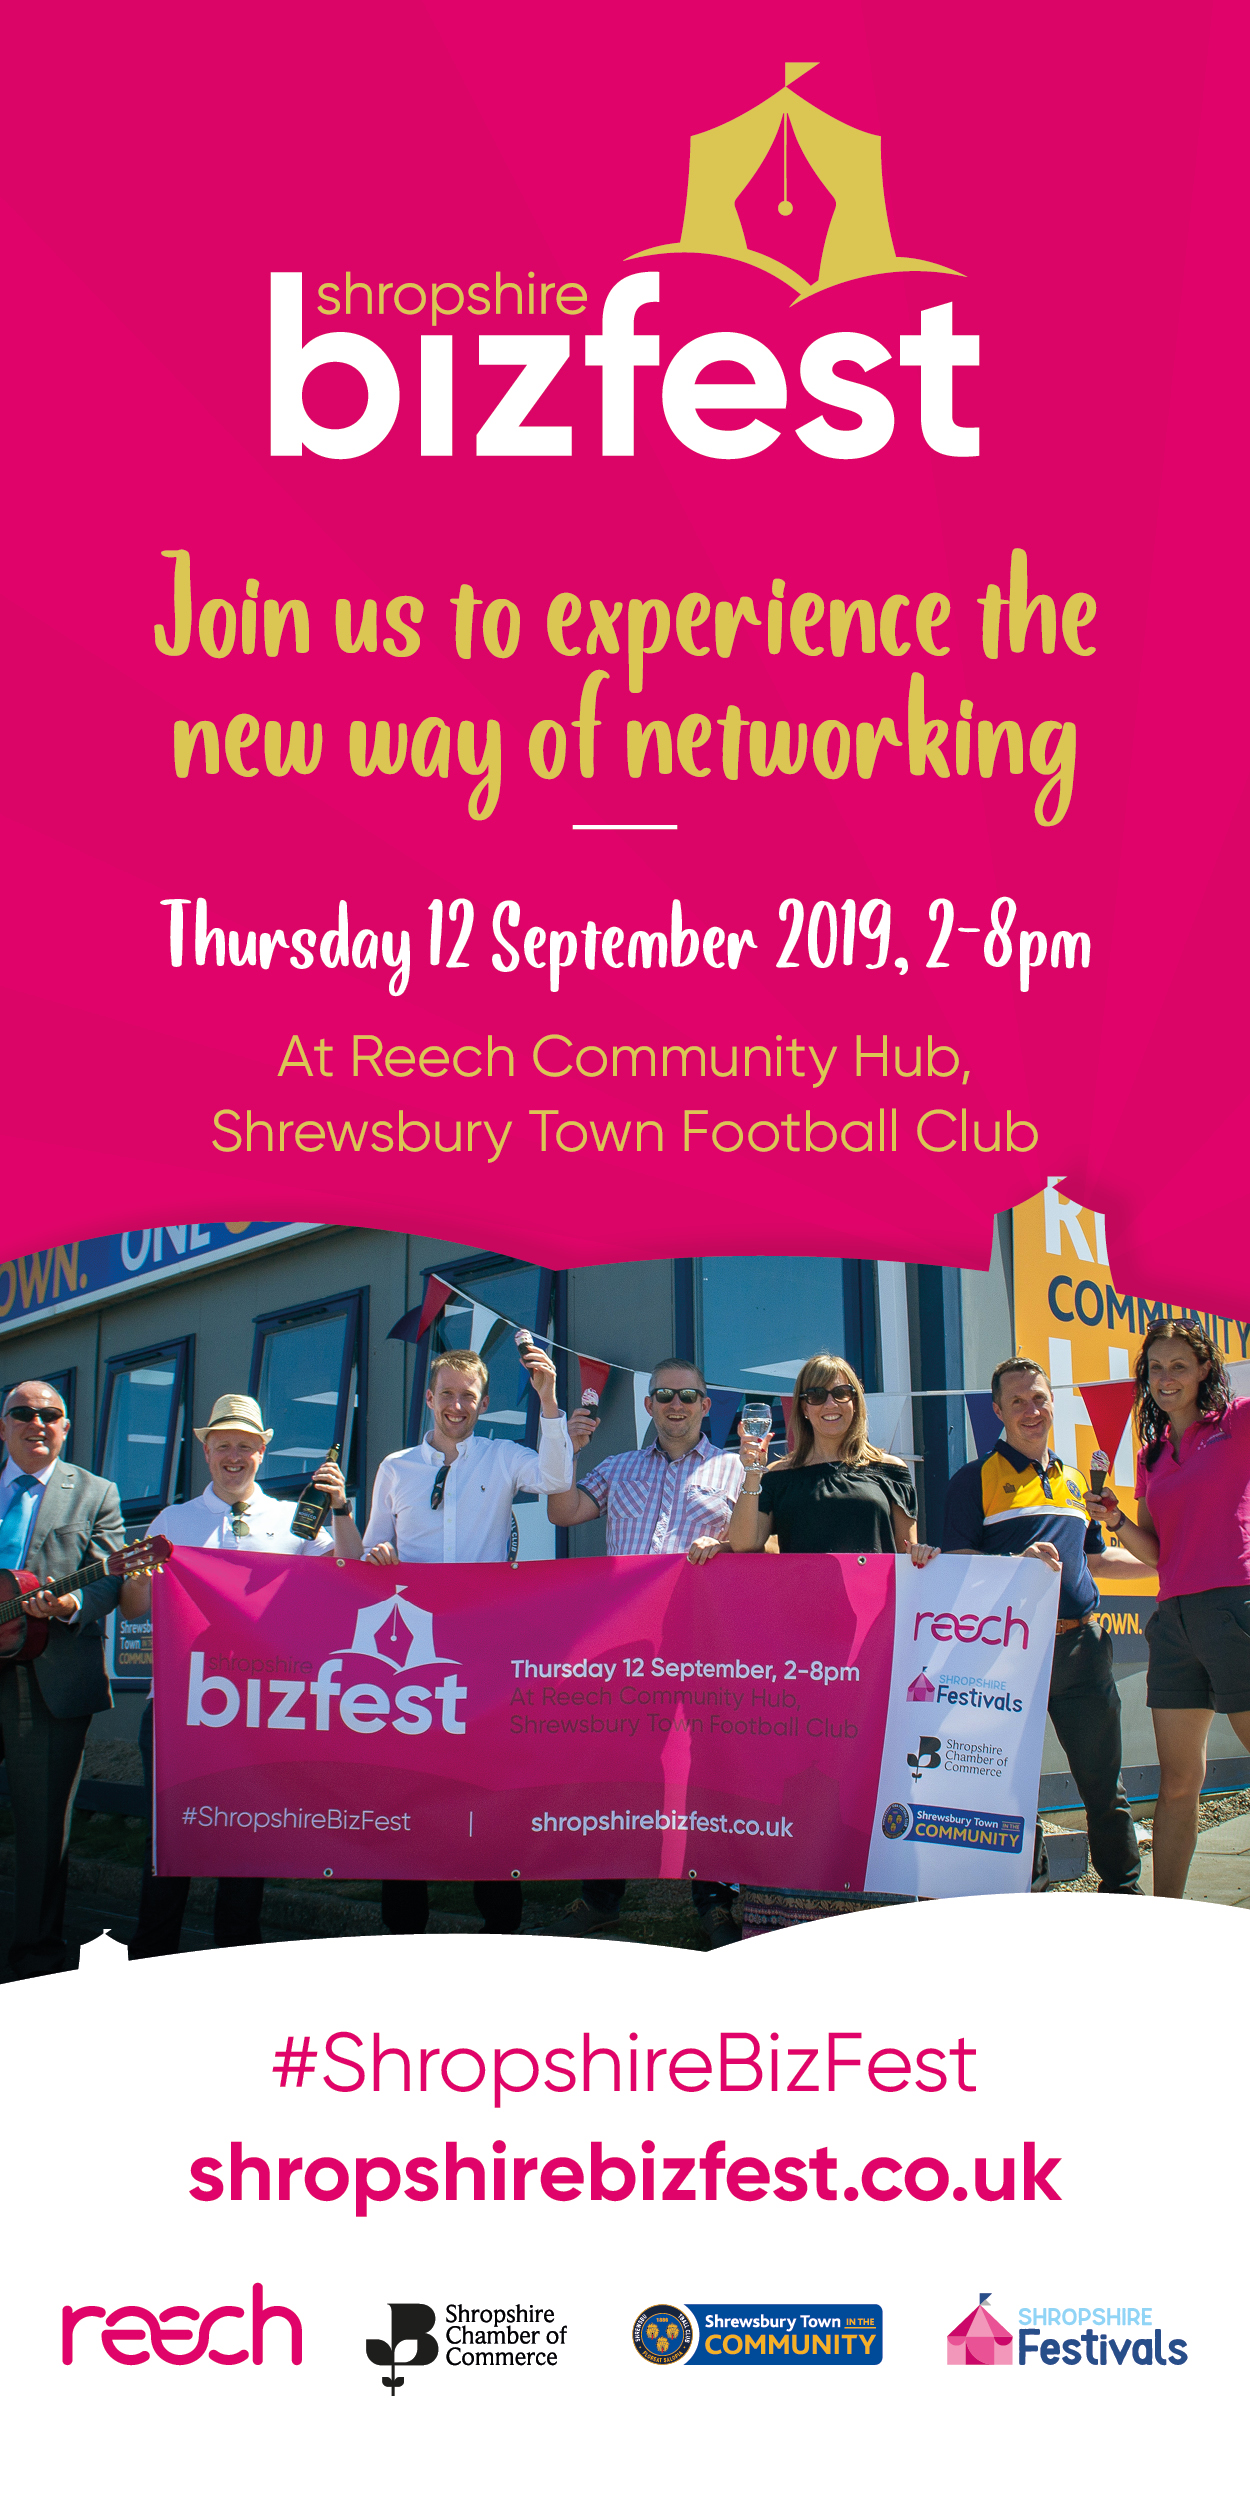 https://shropshirebizfest.co.uk